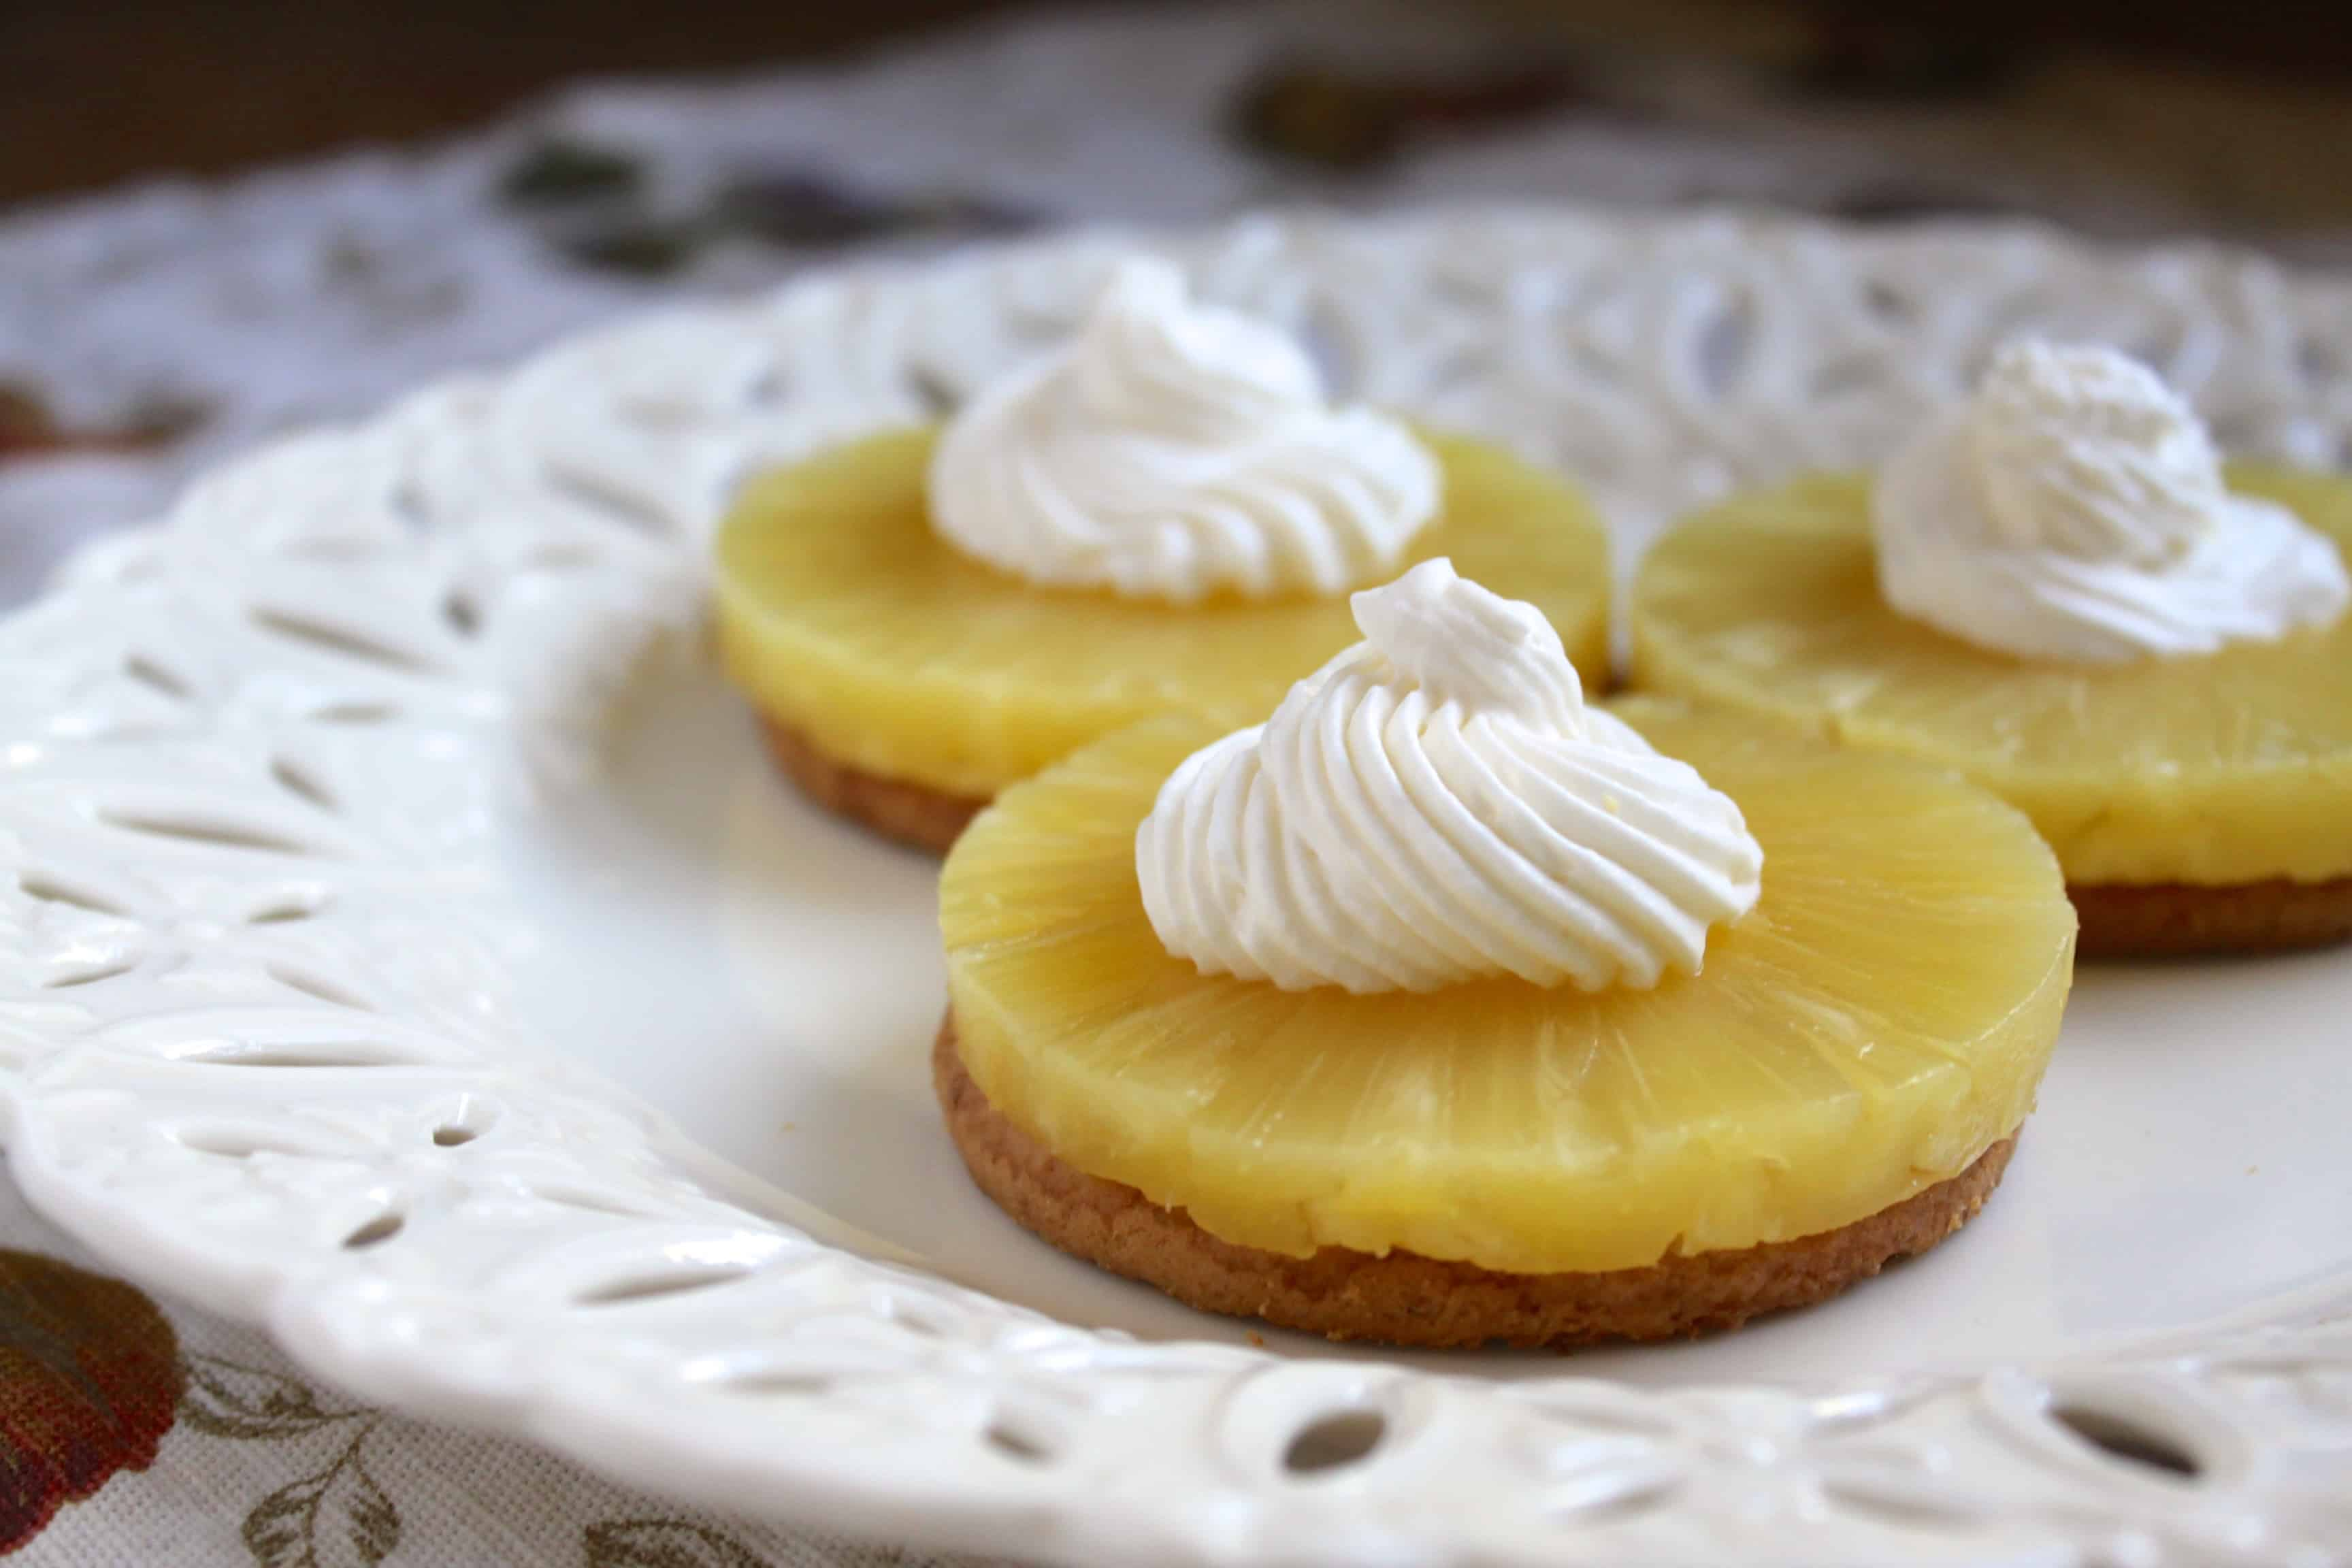 Pineapple and Cream Digestive Delights